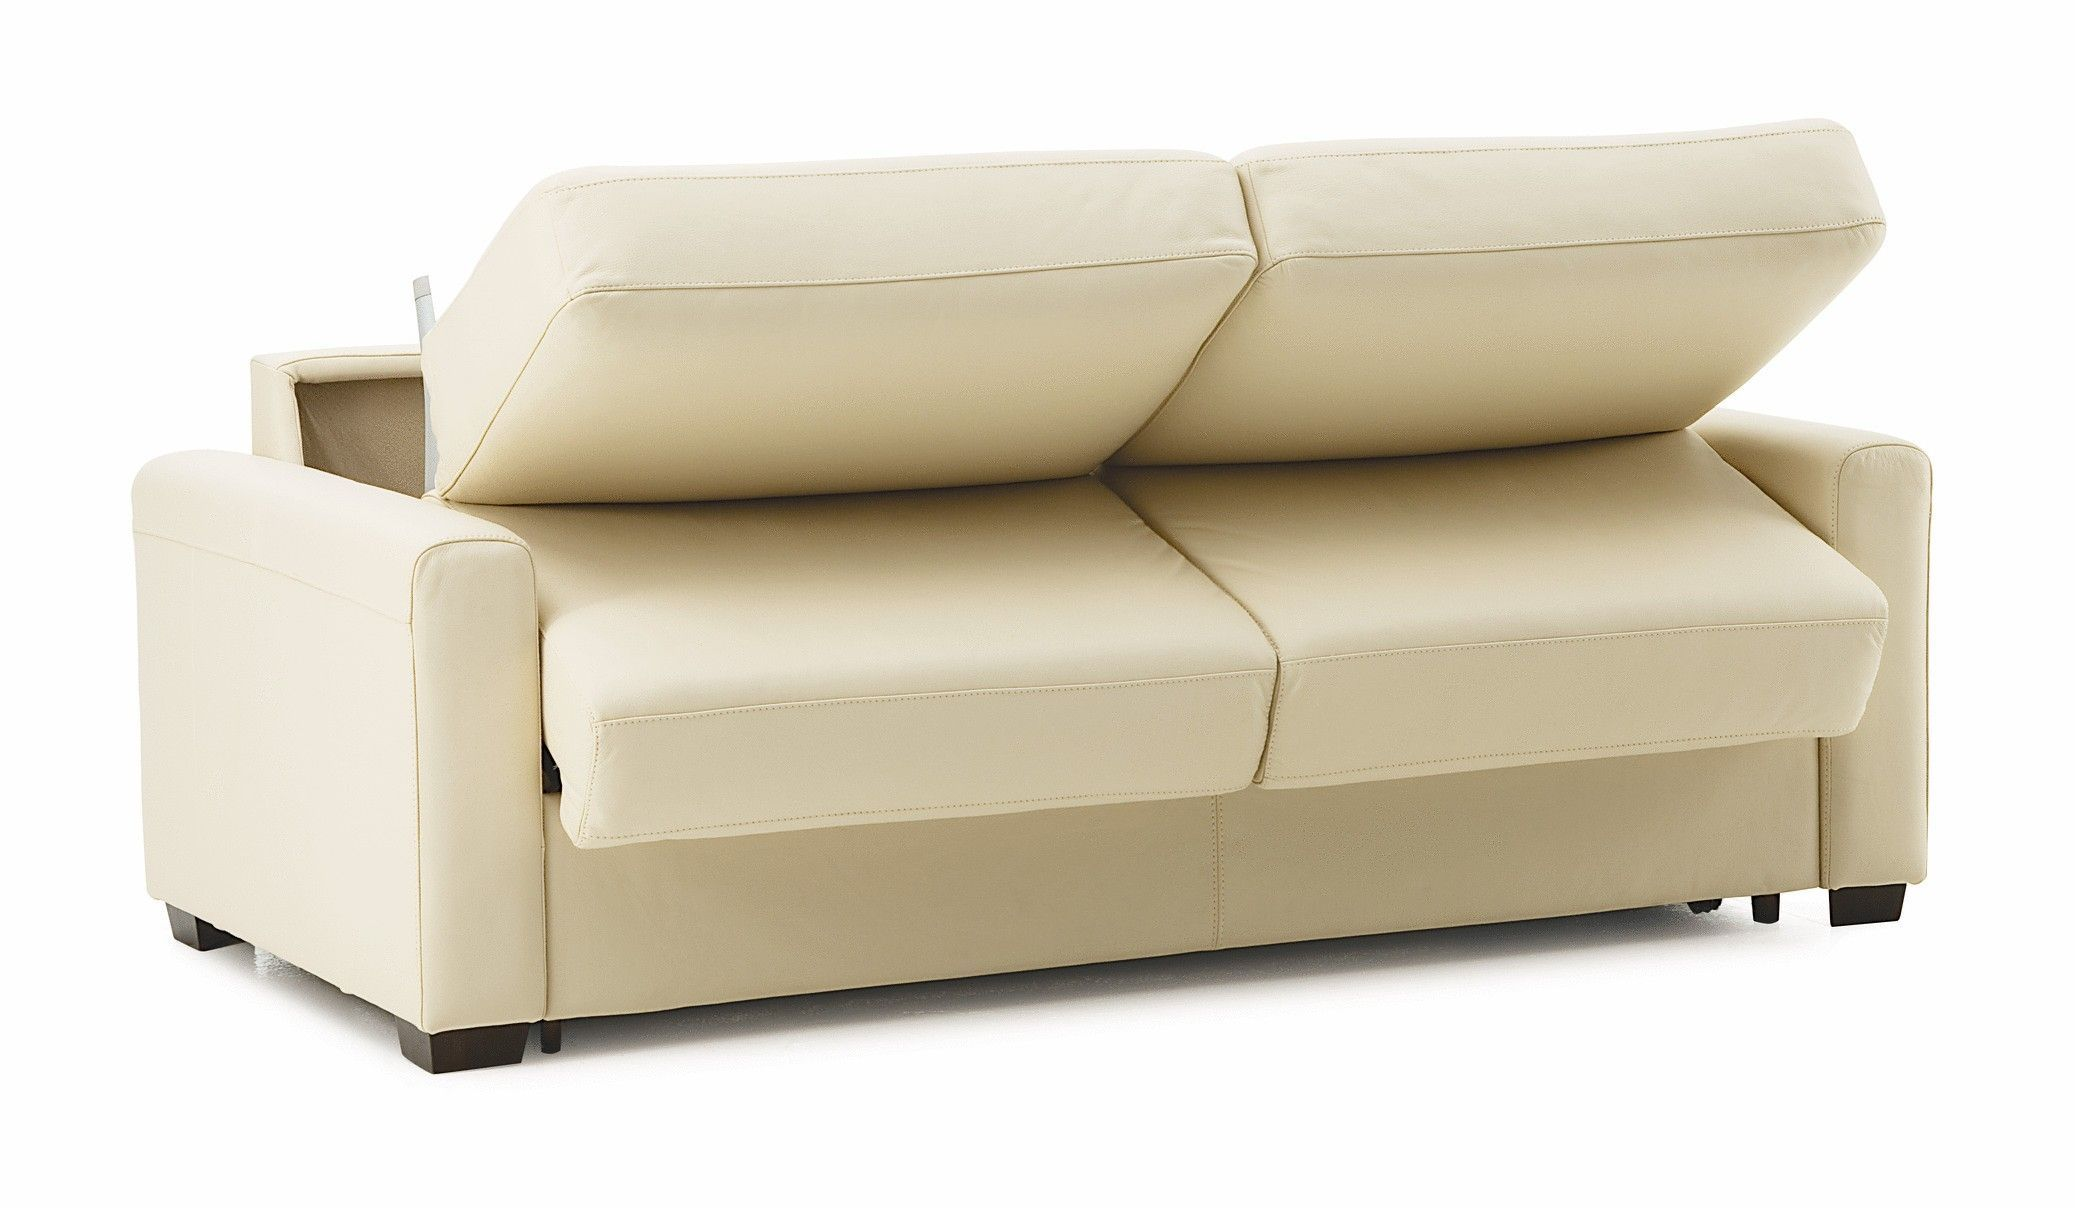 Best Daily Use Sofa Bed Sofabed Best Sleeper Sofa Sofa Bed Uk Sleeper Sofa Comfortable